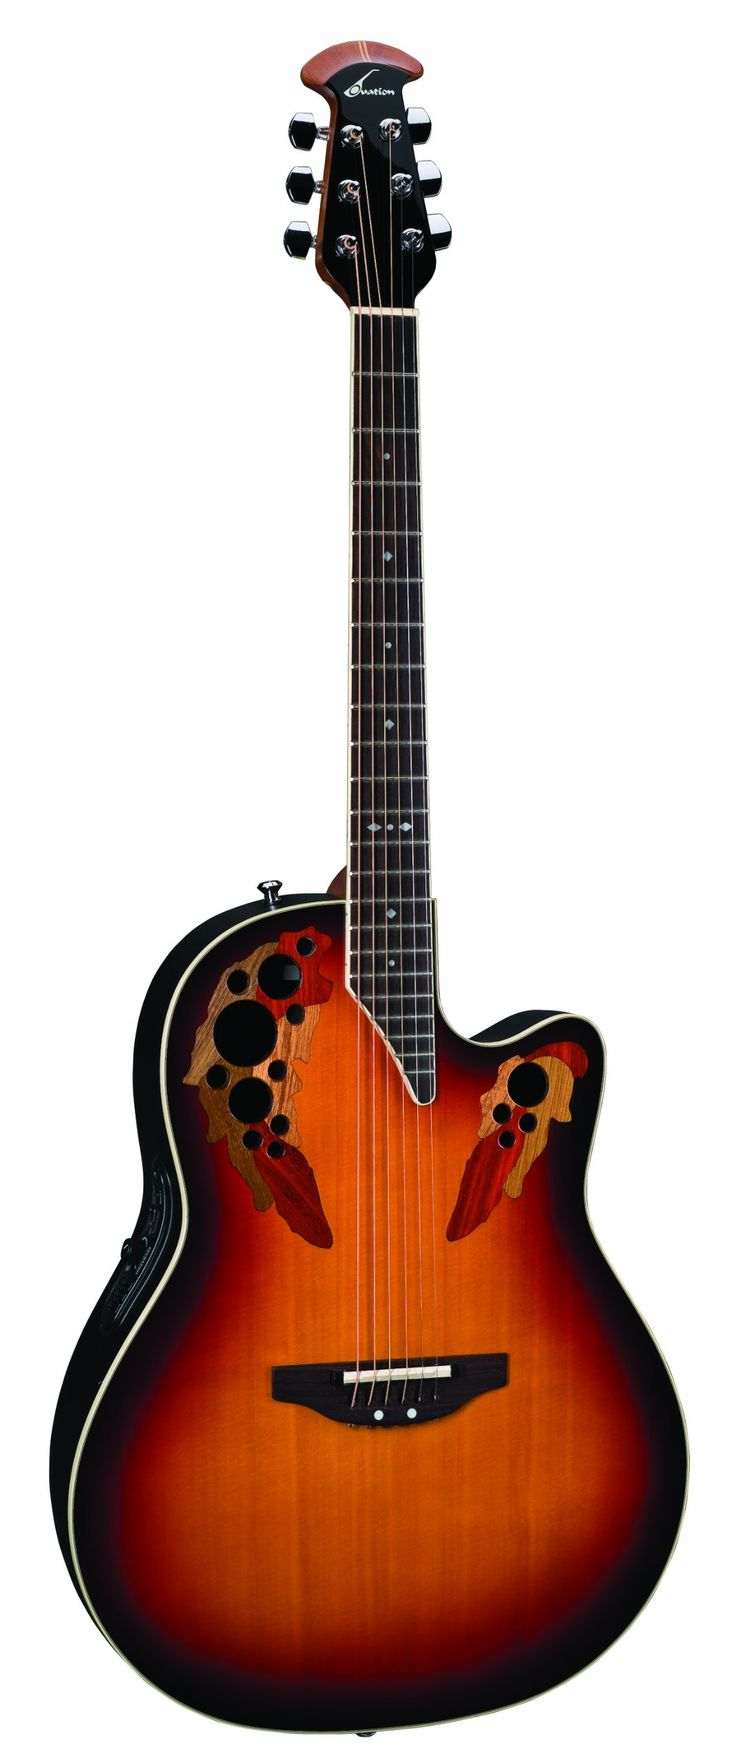 Ovation 2778 AX Standard Elite Deep Contour Acoustic Electric Guitar, New England Burst. Deep Contour. AA Grade Solid Spruce Top. Inlaid Exotic Hardwoods.